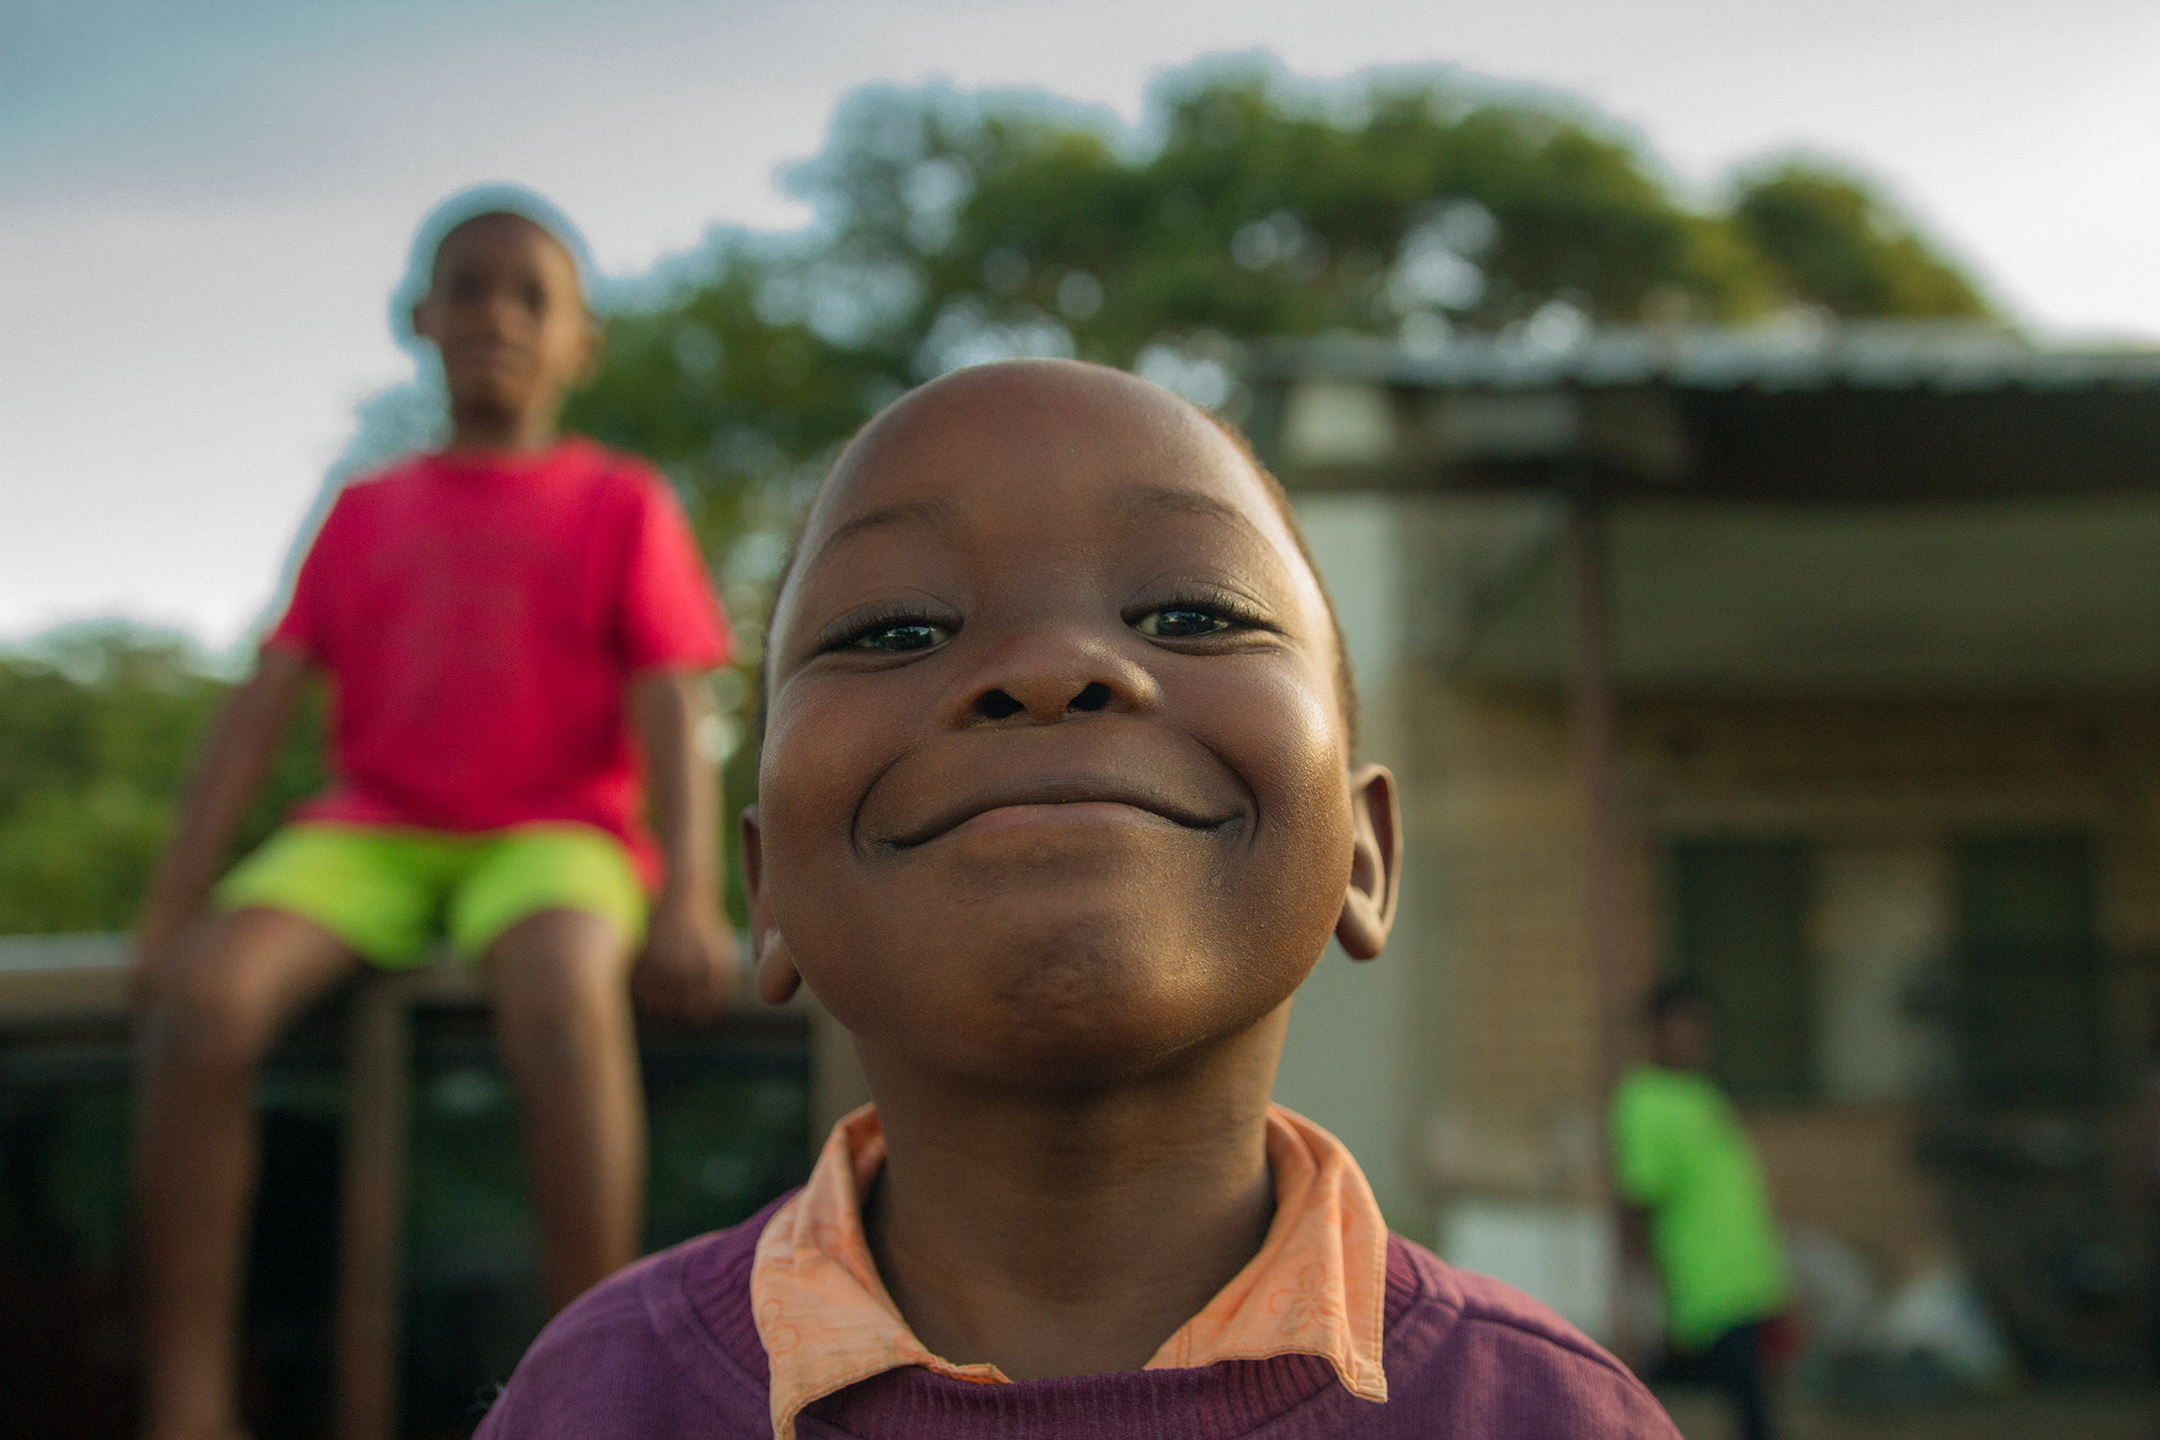 A family centered village. - There is a great need here in Zambia to look after the children that are vulnerable and or orphaned from HIV/AIDS. Our villages emphasizes family and is structured to support kids ranging from toddlers to teenagers to know they are loved, valuable and have a calling from God in life.